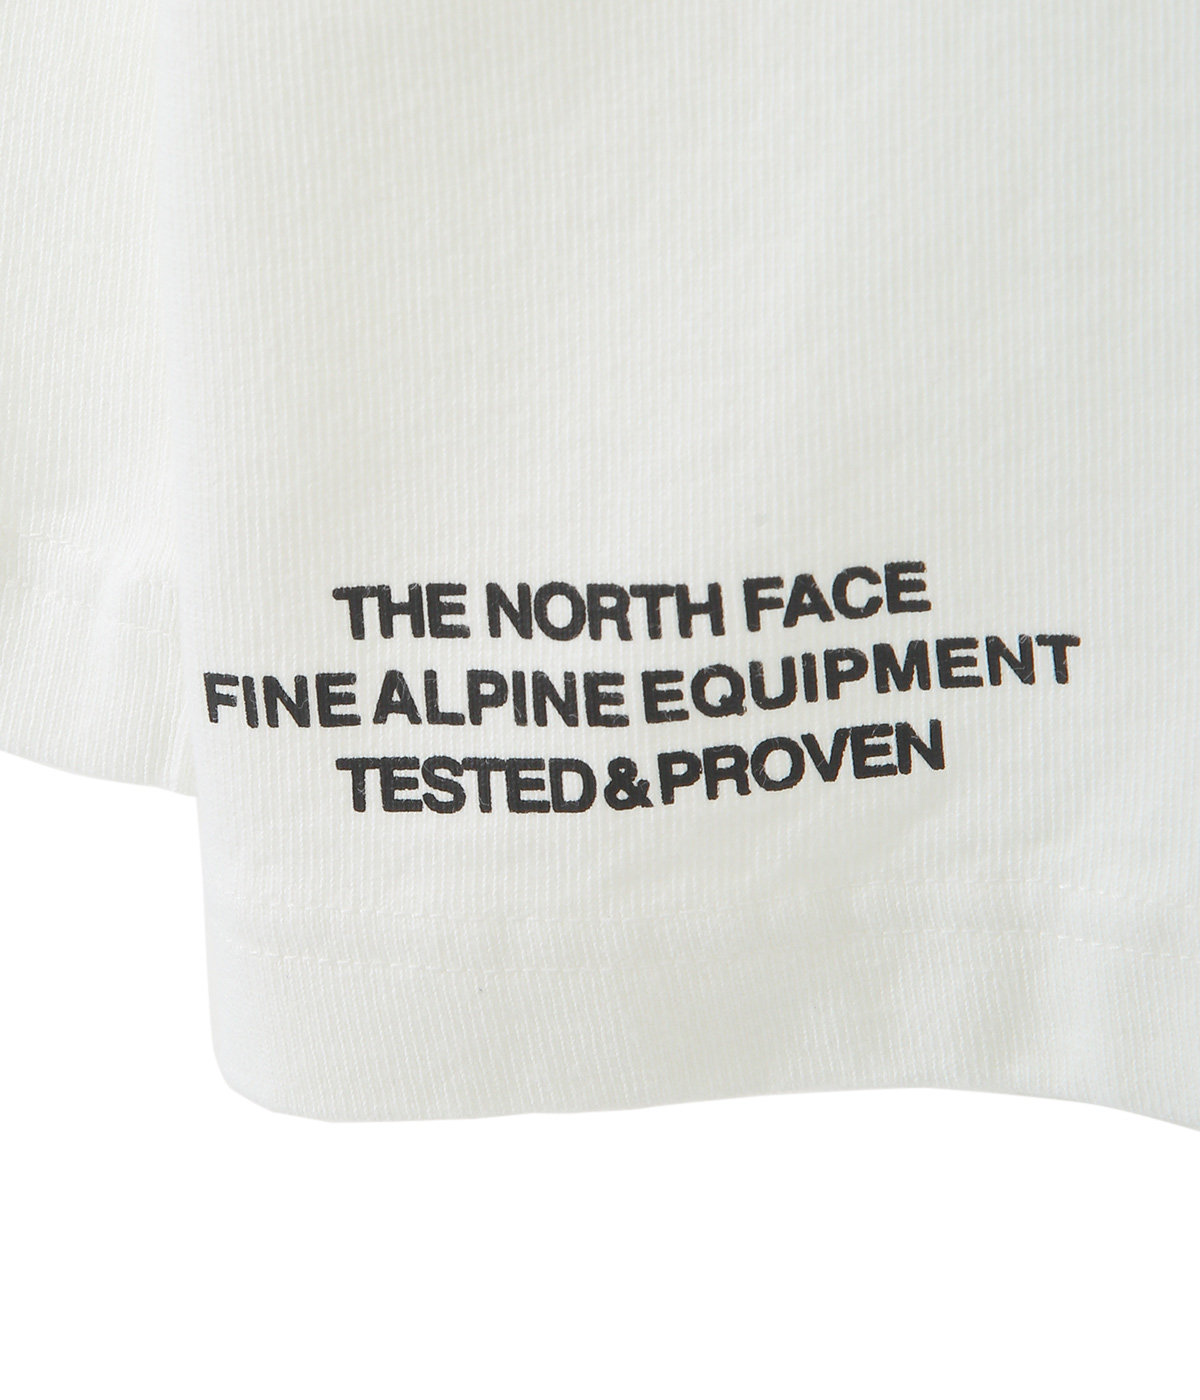 L/S Tested Proven Tee